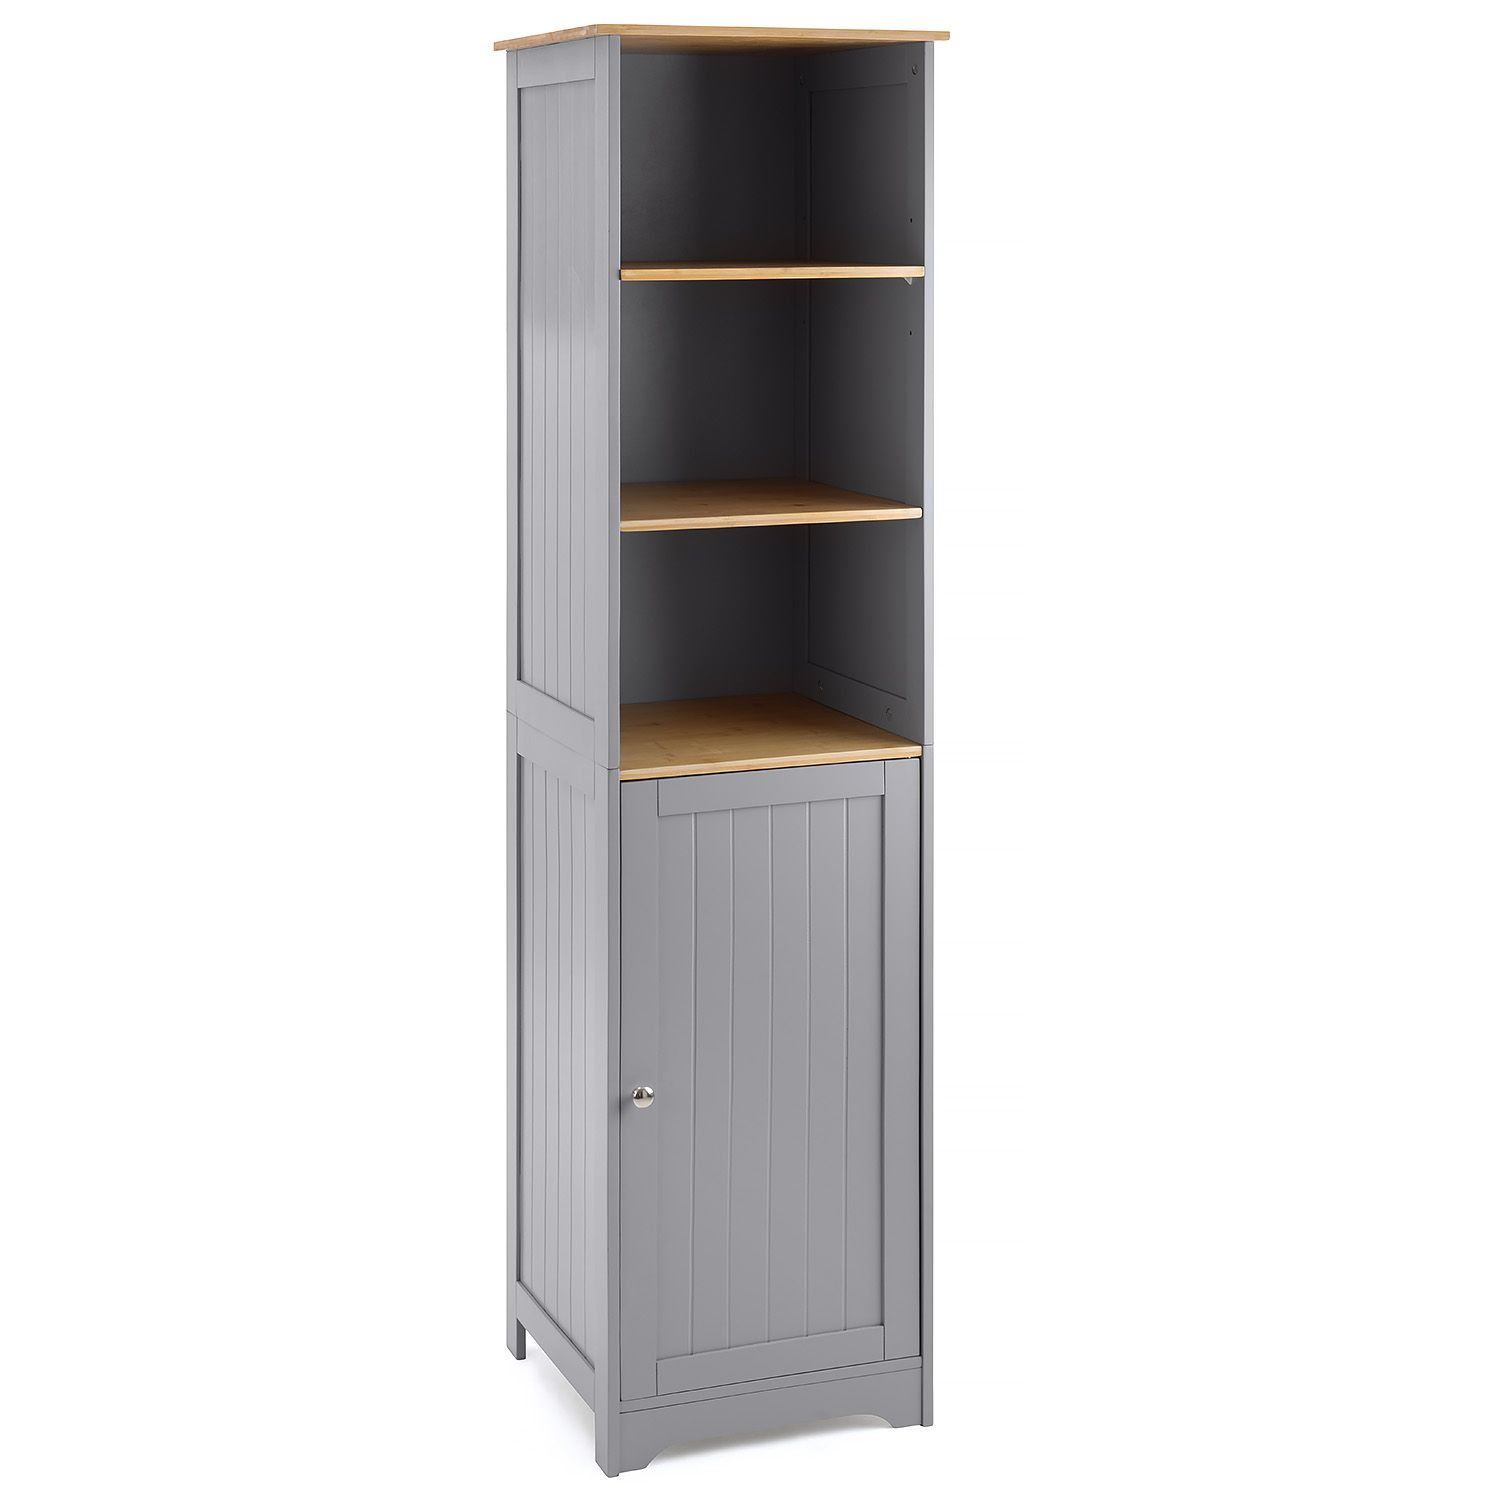 Furniture Bathroom Shelf Cabinet Grey Bamboo Freestanding Tallboy Storage Unit Christow Kisetsu System Co Jp